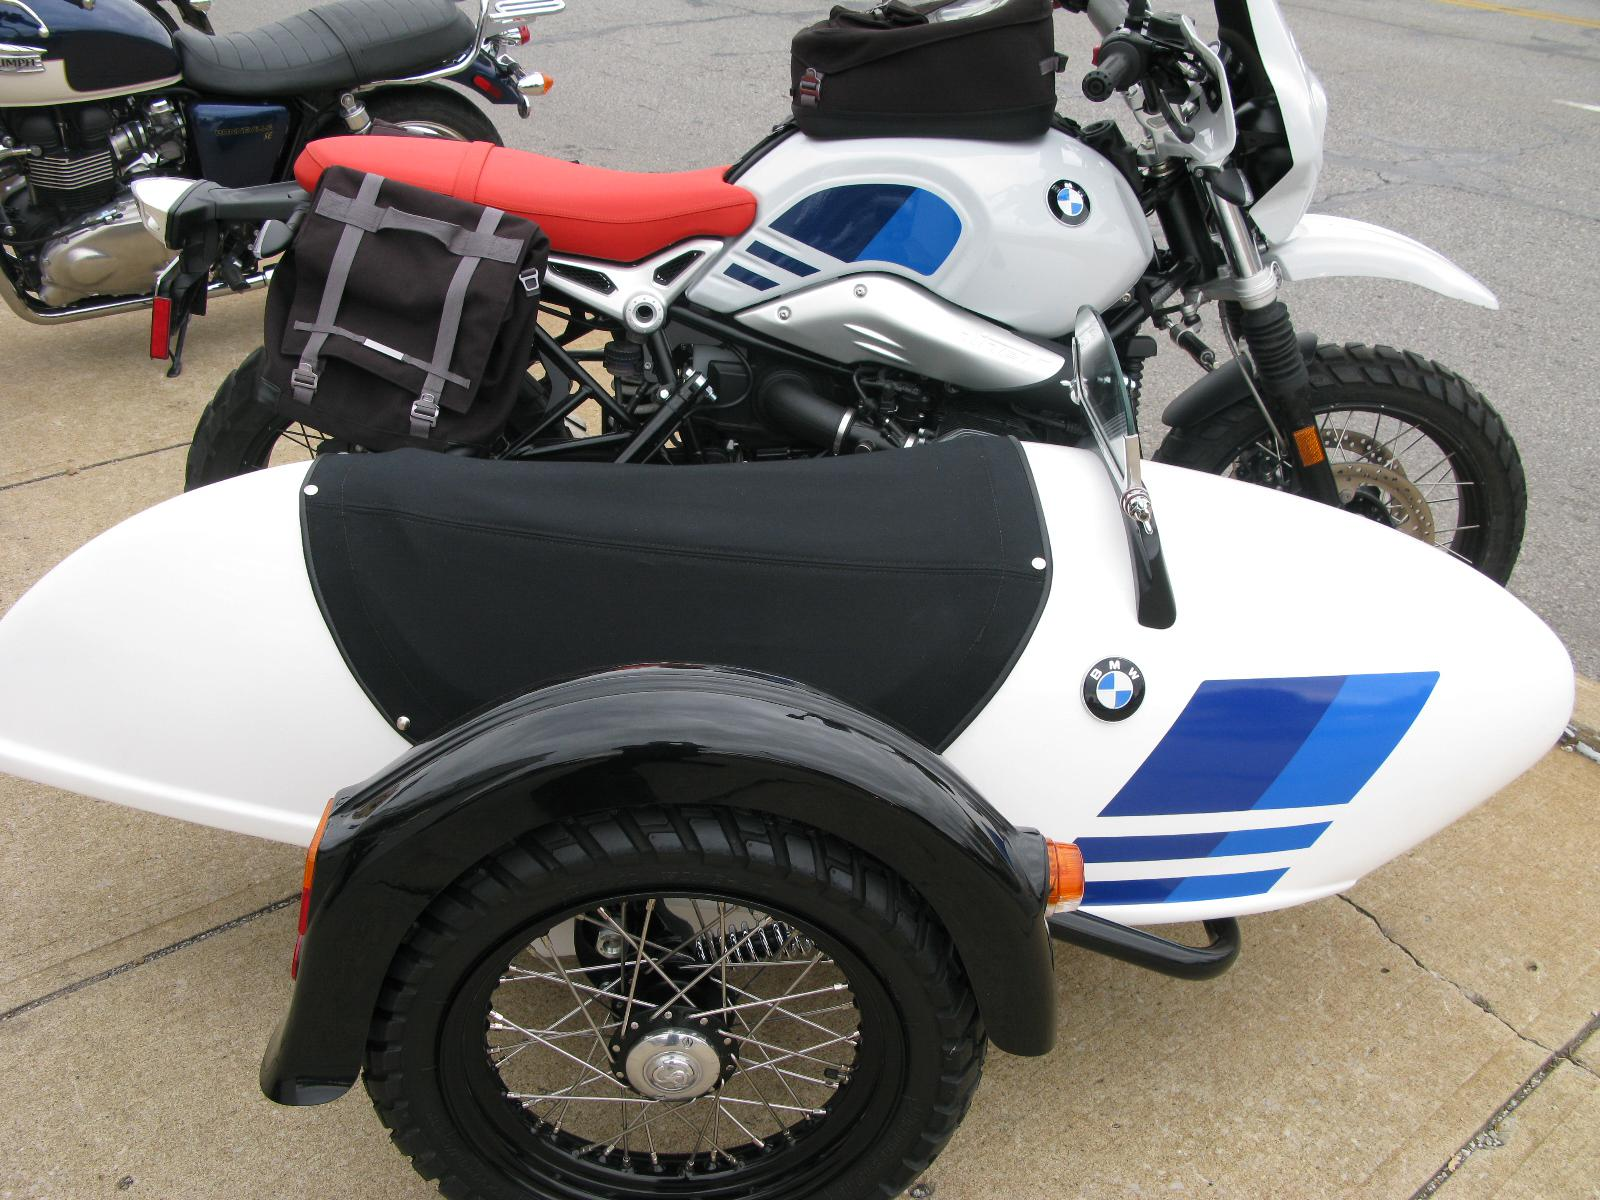 2018 Bmw R9t Urban Gs For Sale In Kansas City Mo Engle Motors